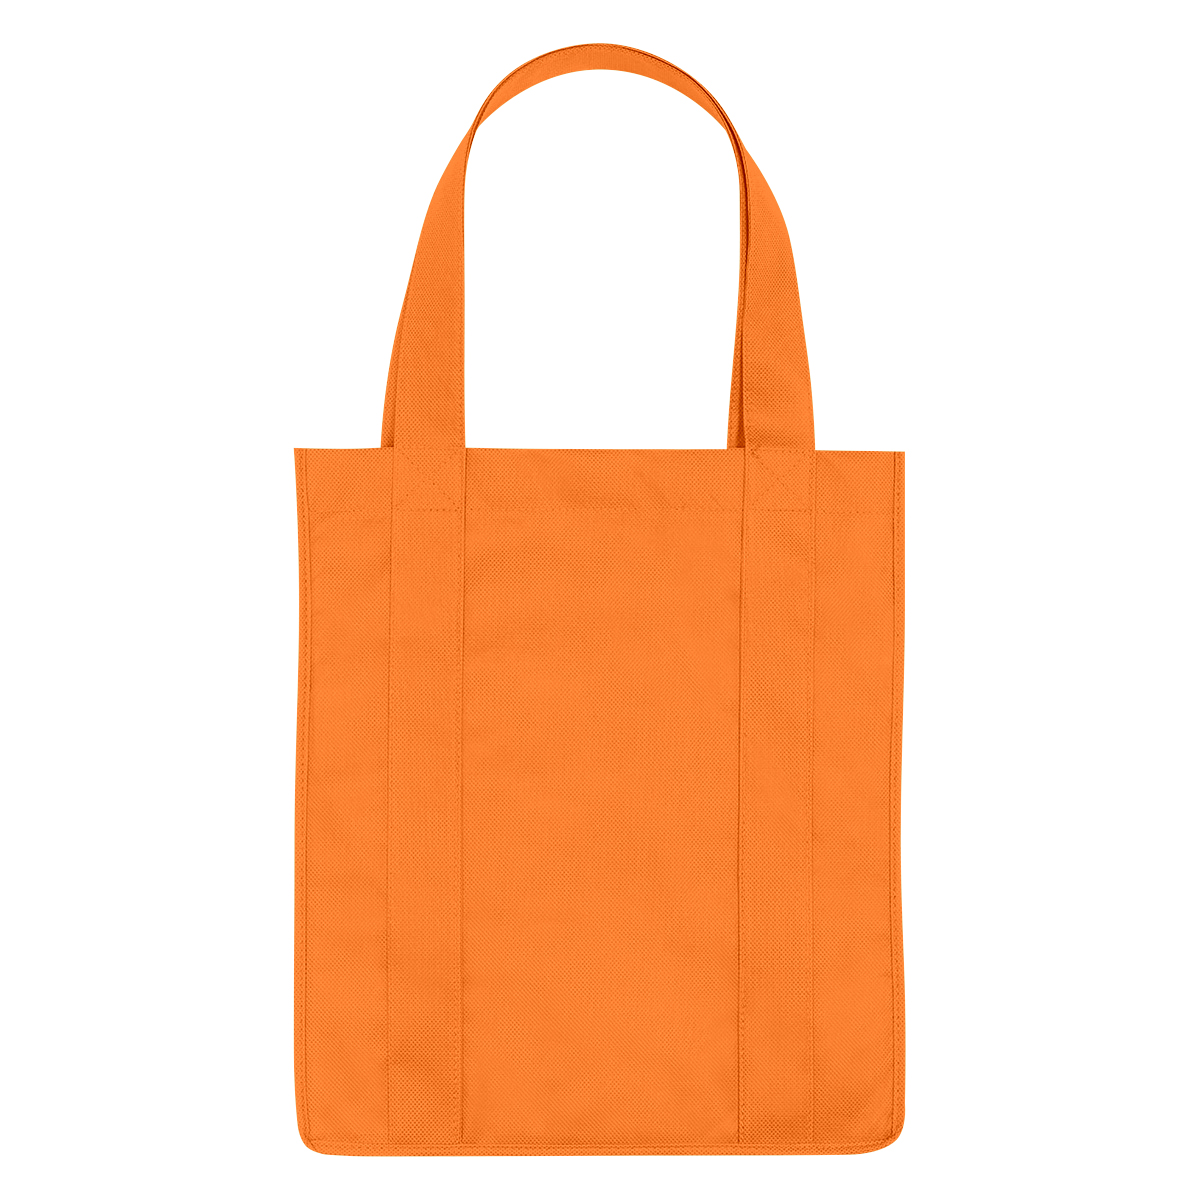 a2041e5b54c2 3031 Non-Woven Shopper Tote Bag - Hit Promotional Products